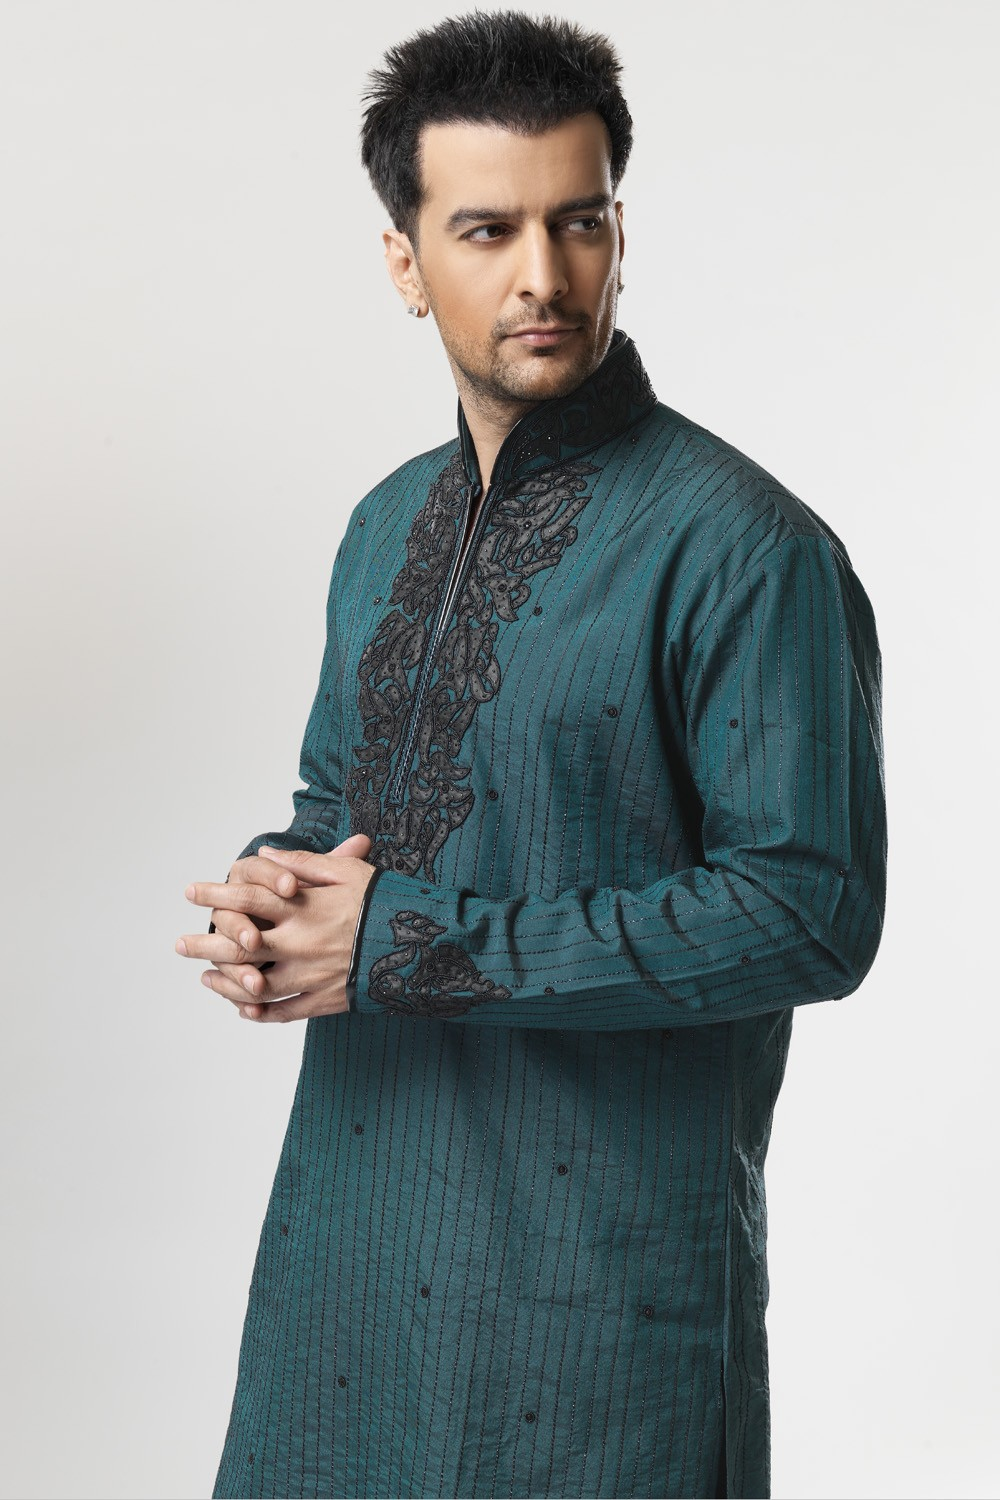 Mehndi Mens Clothes : Men mehndi dresses designs kurta collection